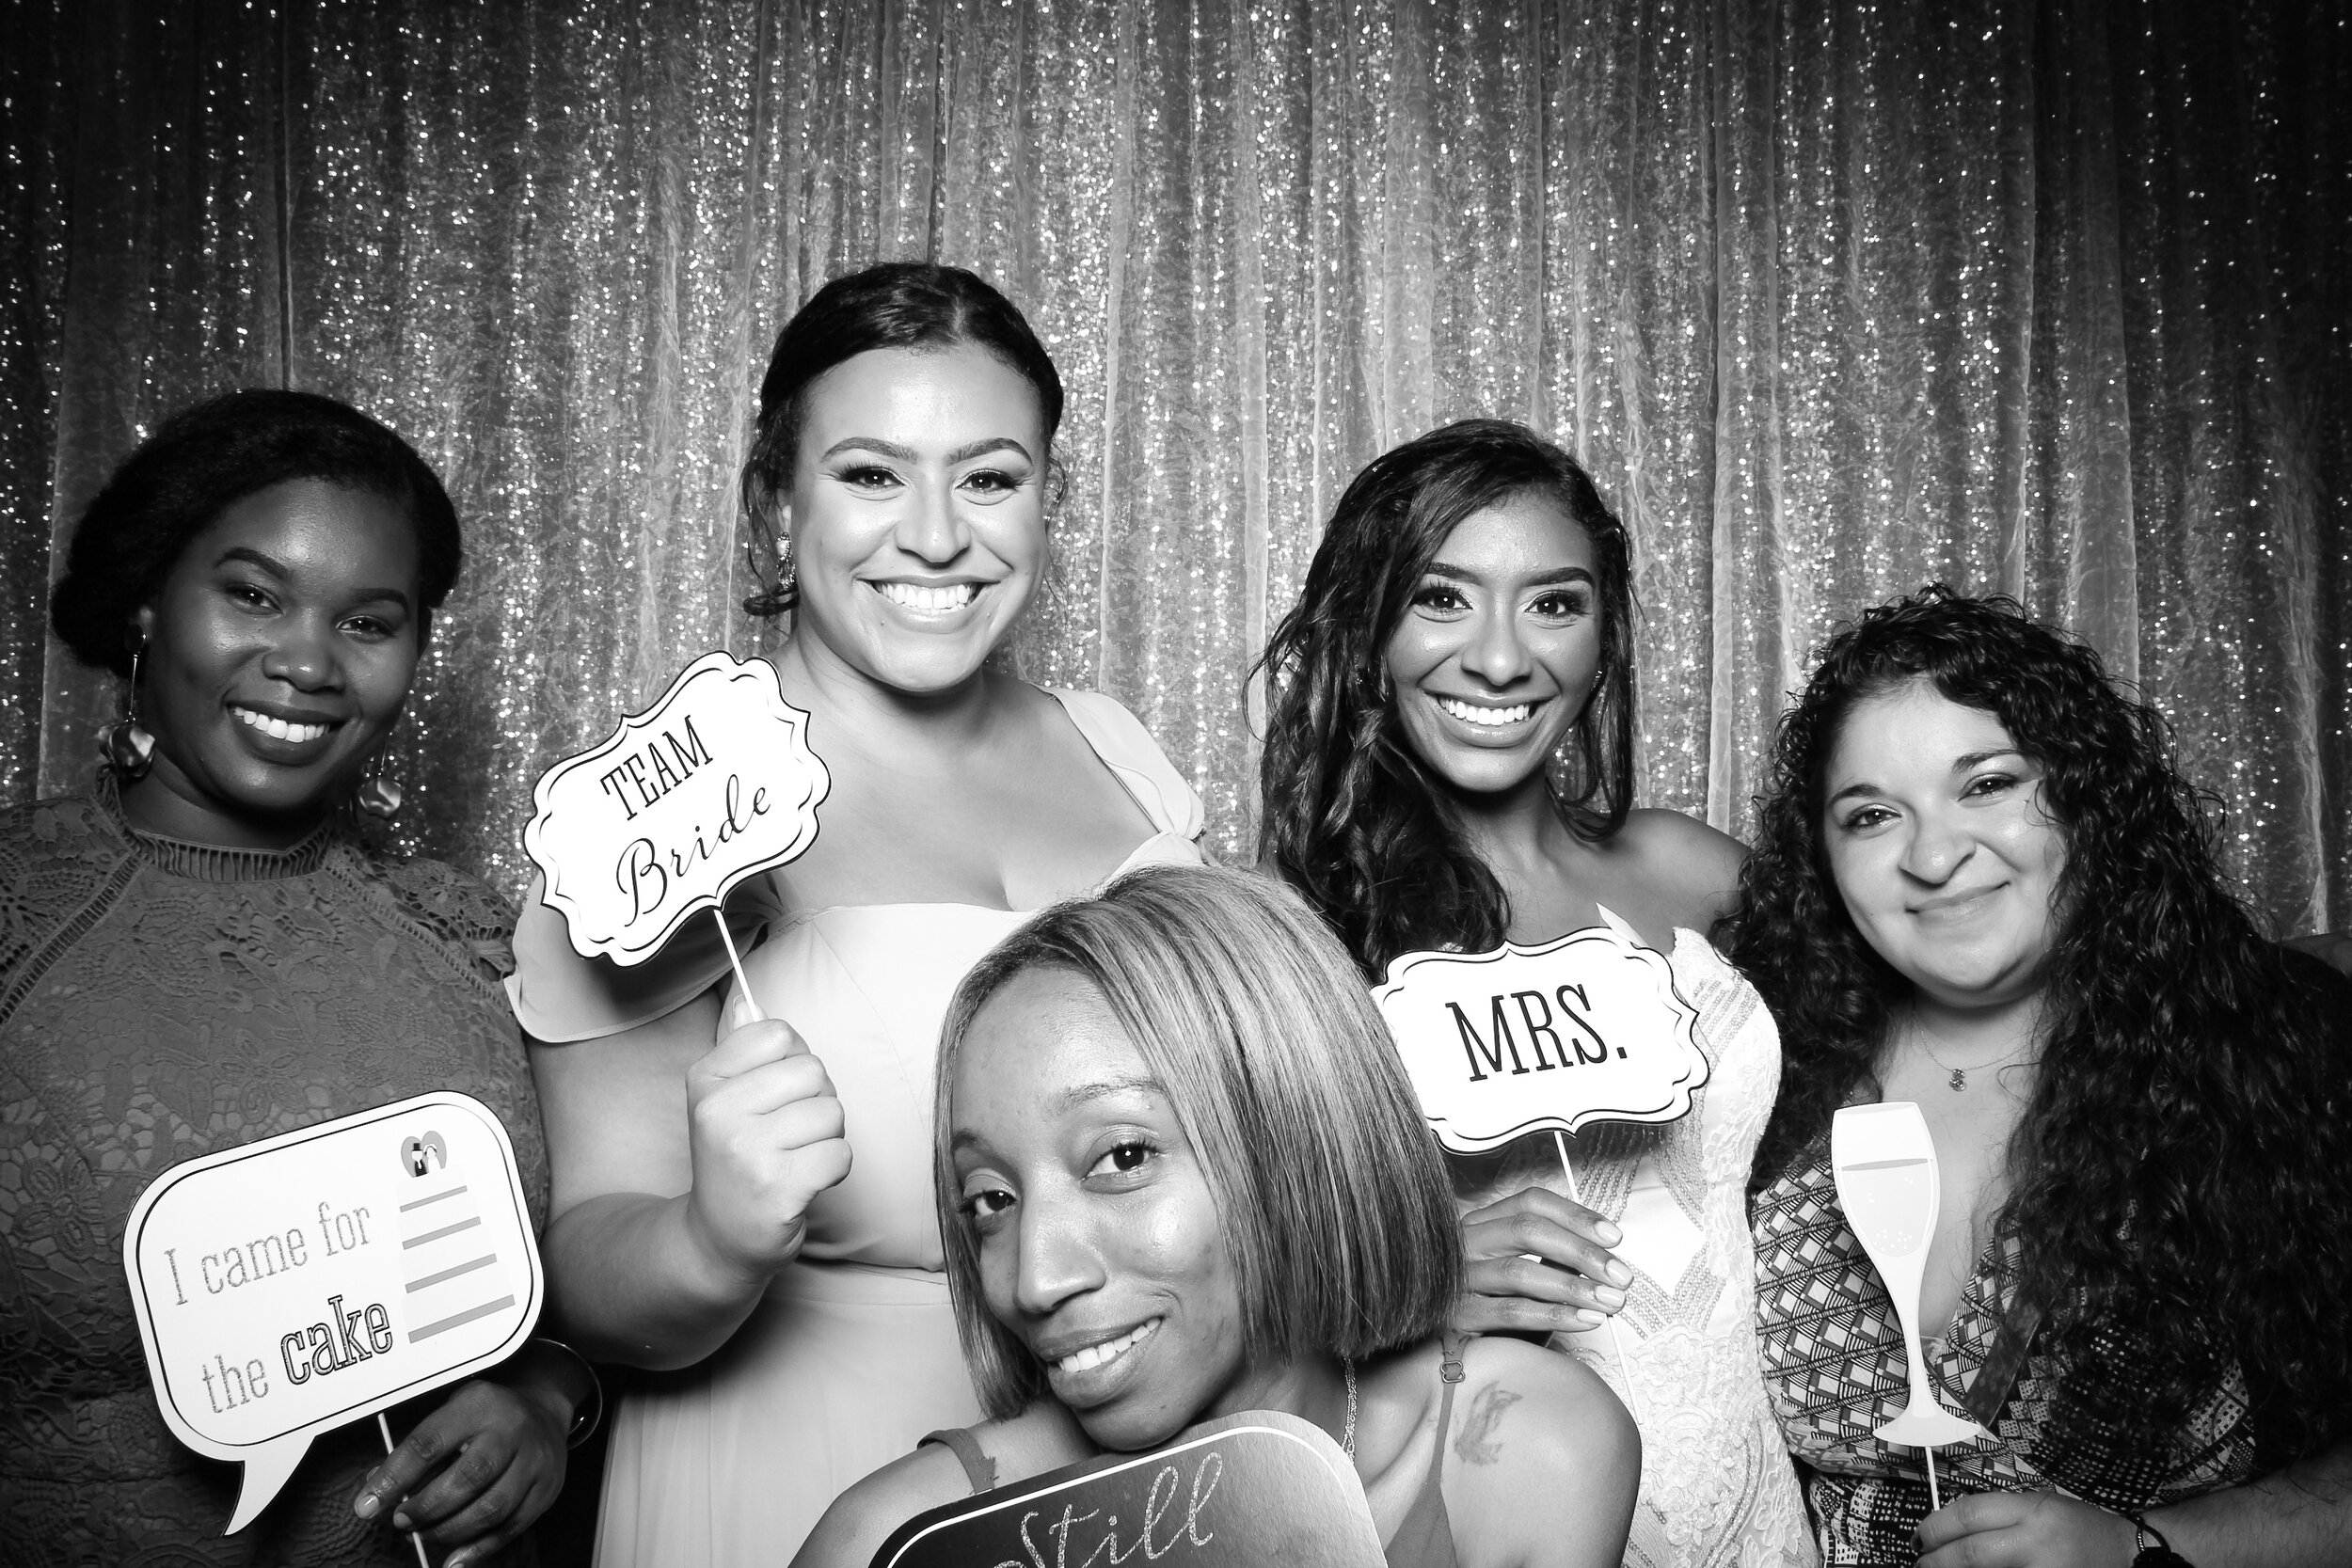 Ravisloe_Country_Club_Wedding_Photo_Booth_15.jpg